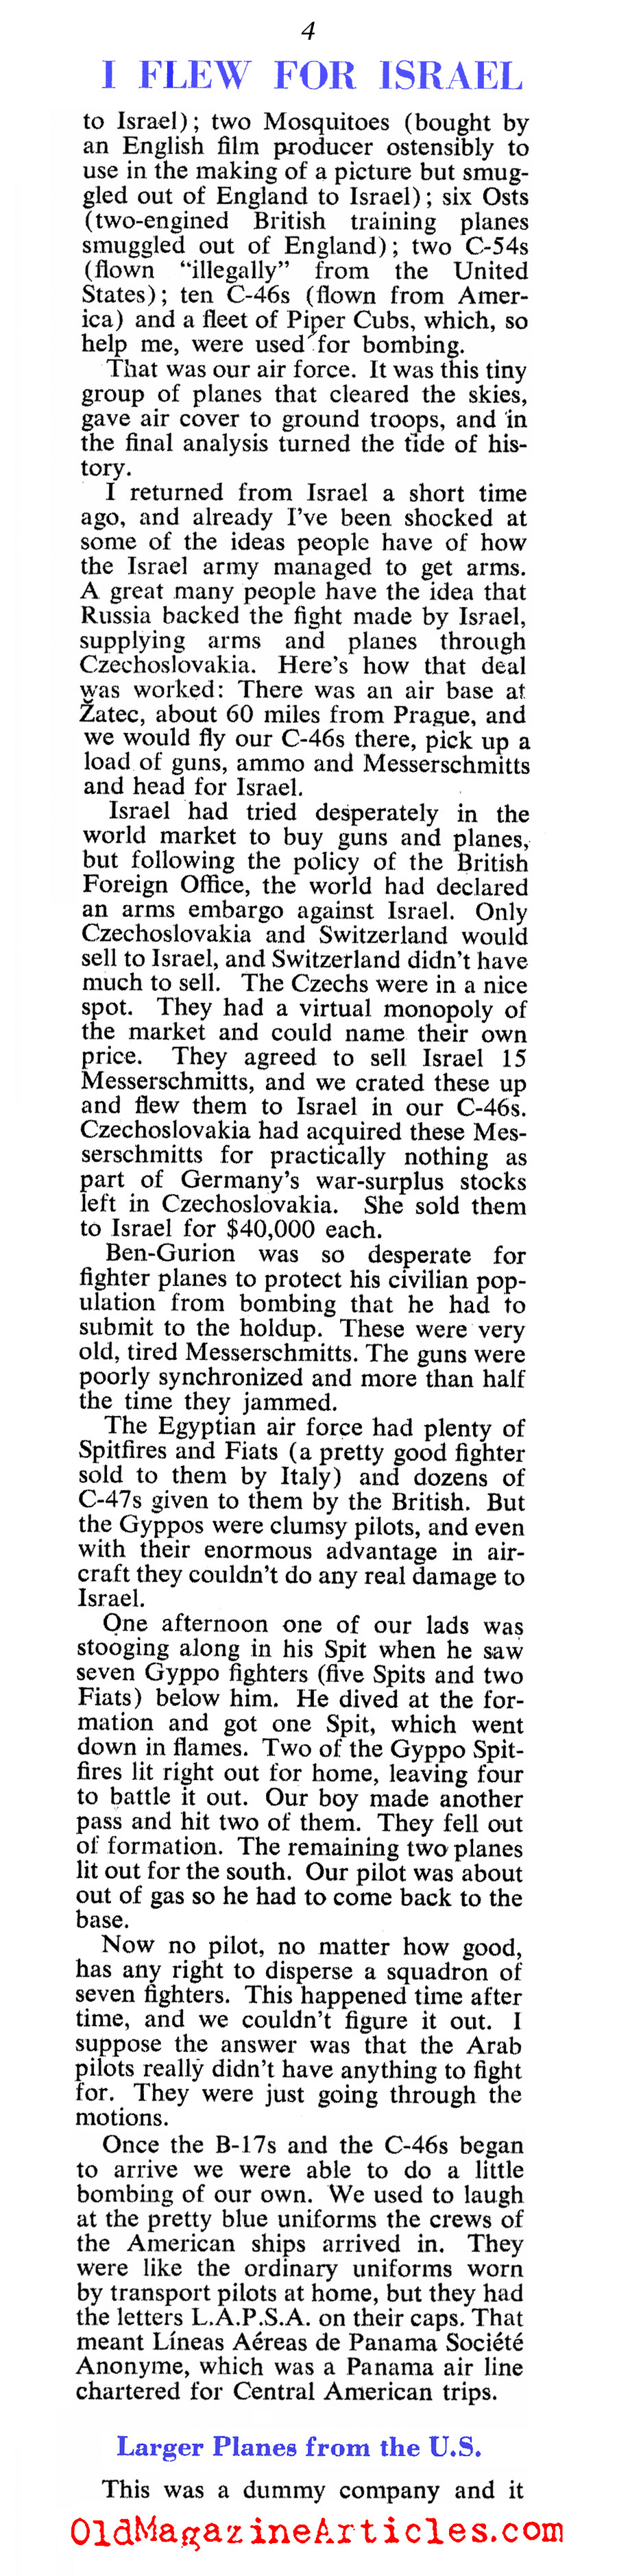 ''I Flew for Israel'' (Collier's Magazine, 1949)